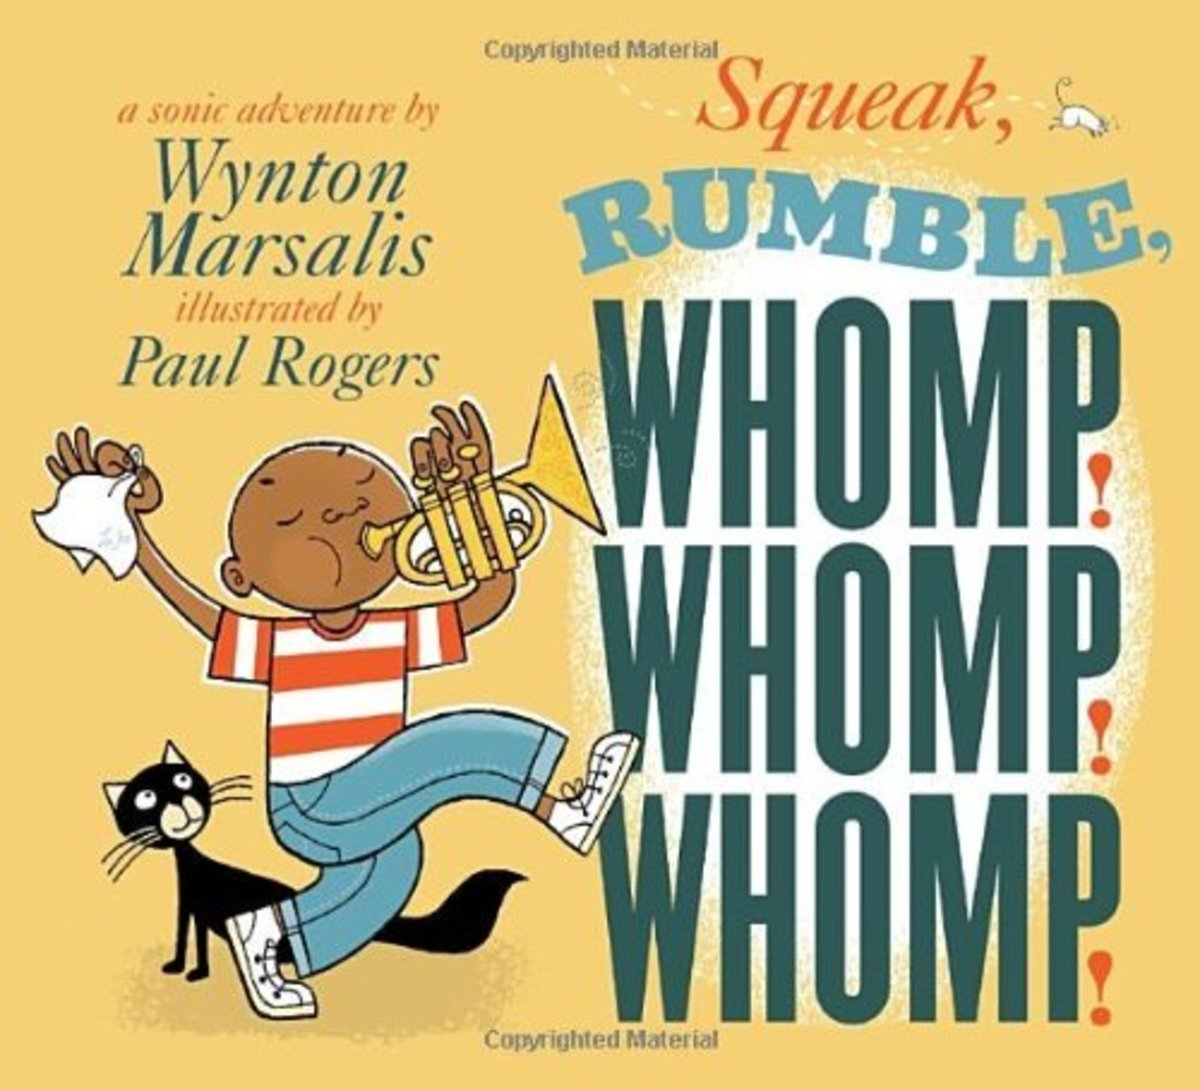 Squeak, Rumble, Whomp! Whomp! Whomp! By Wynton Marsalis